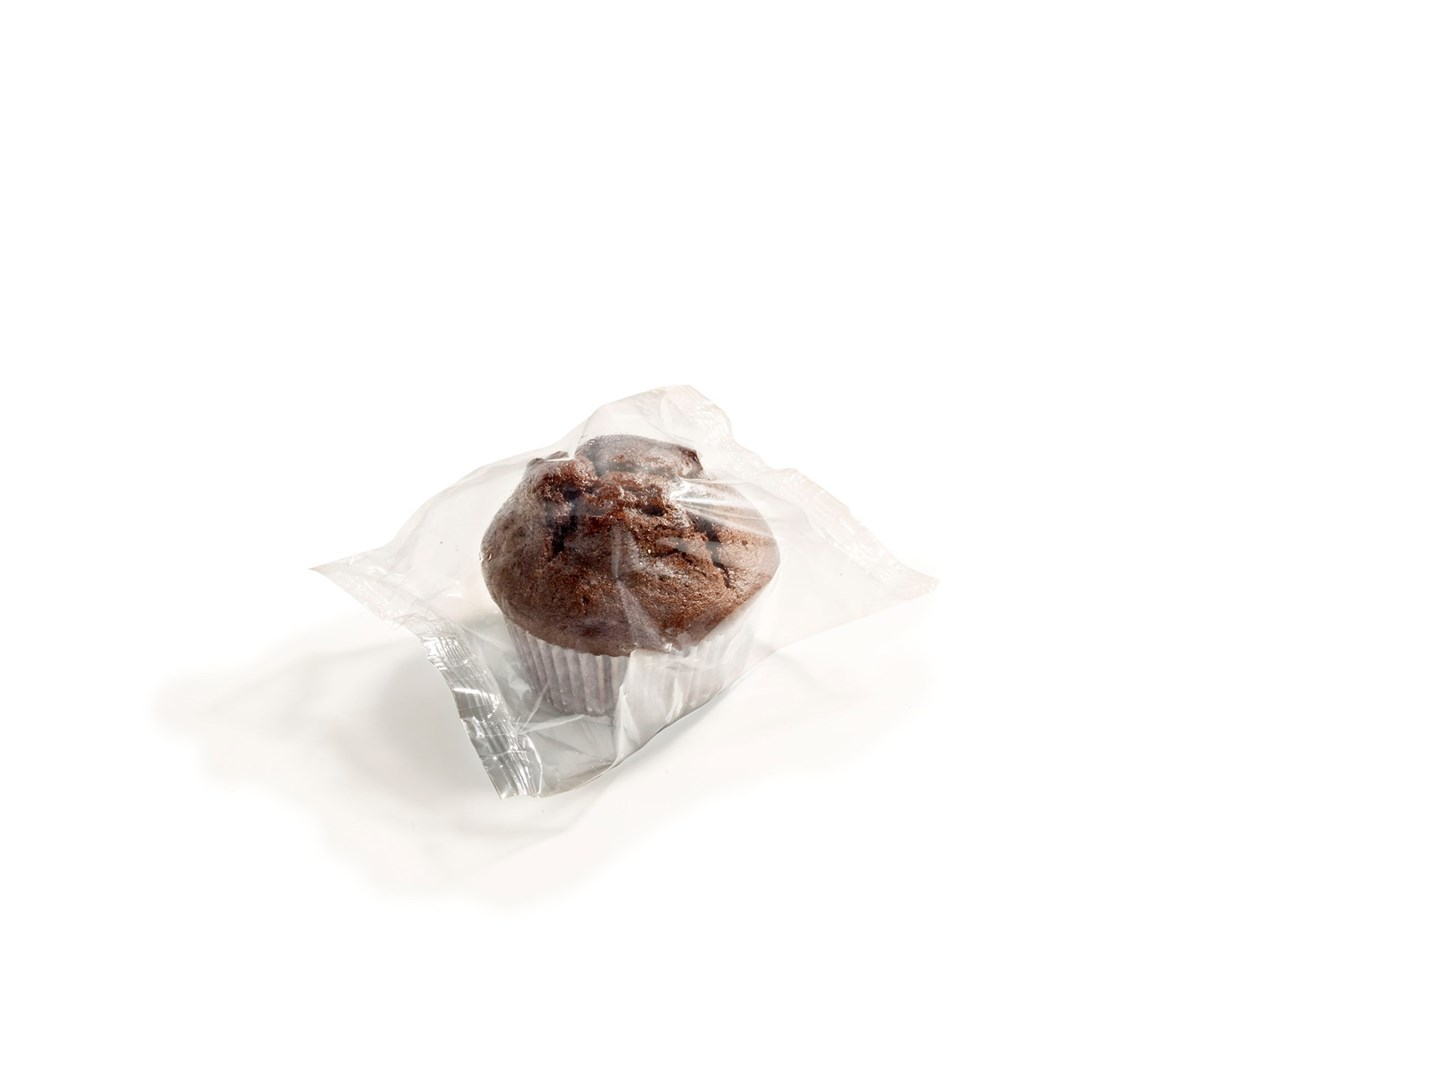 Productafbeelding DOUBLE CHOC CHIP MUFFIN, SINGLE